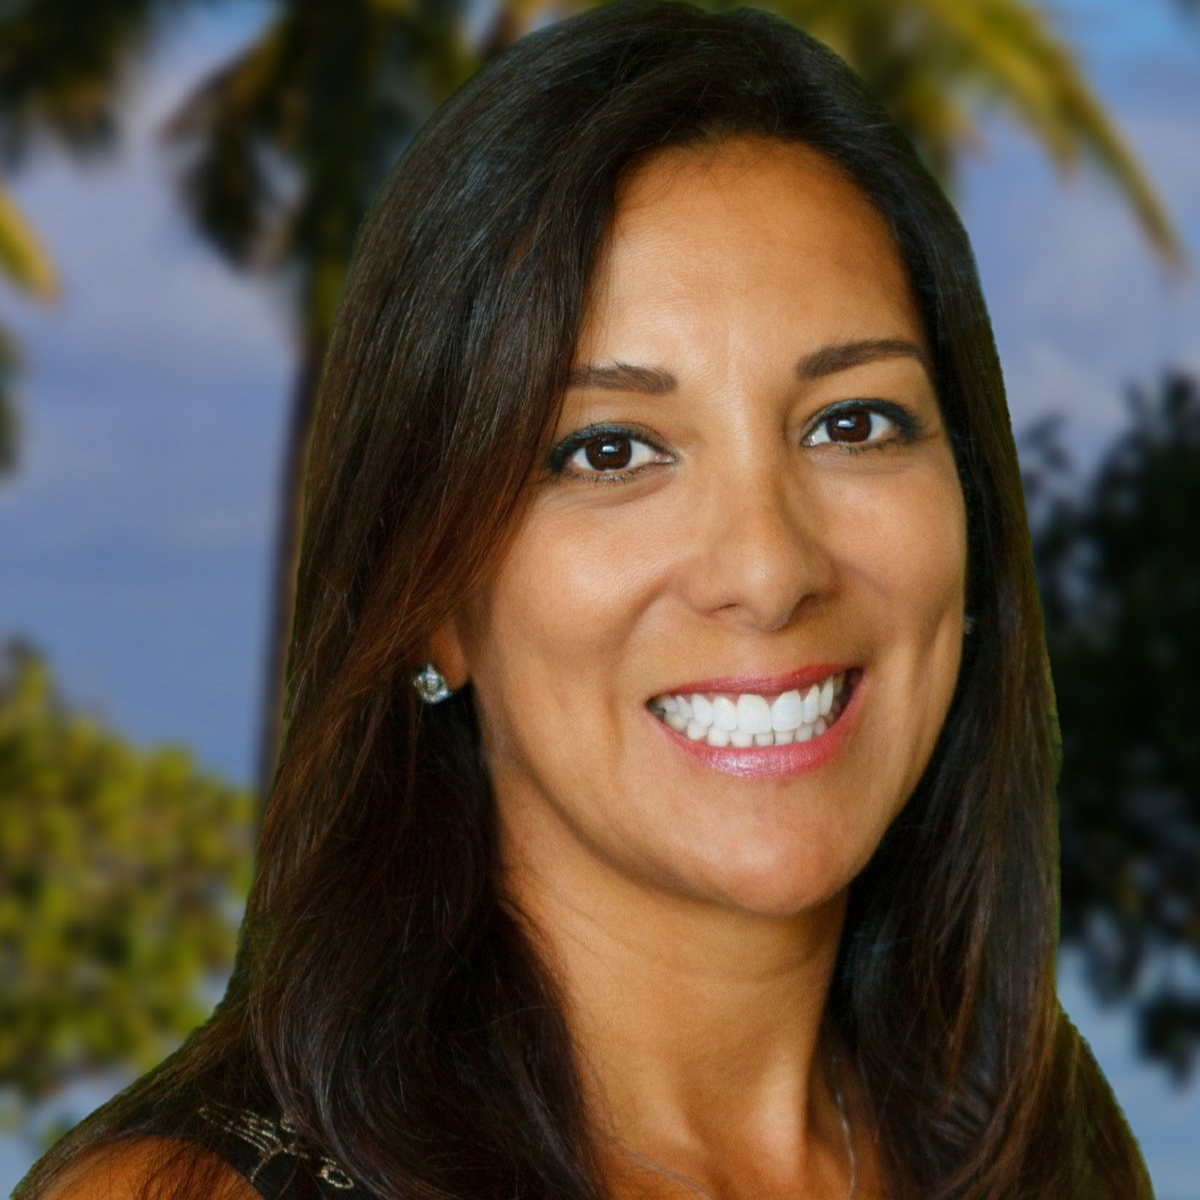 Alicia Iverson - Chief Financial Officer, Koloa Rum Company